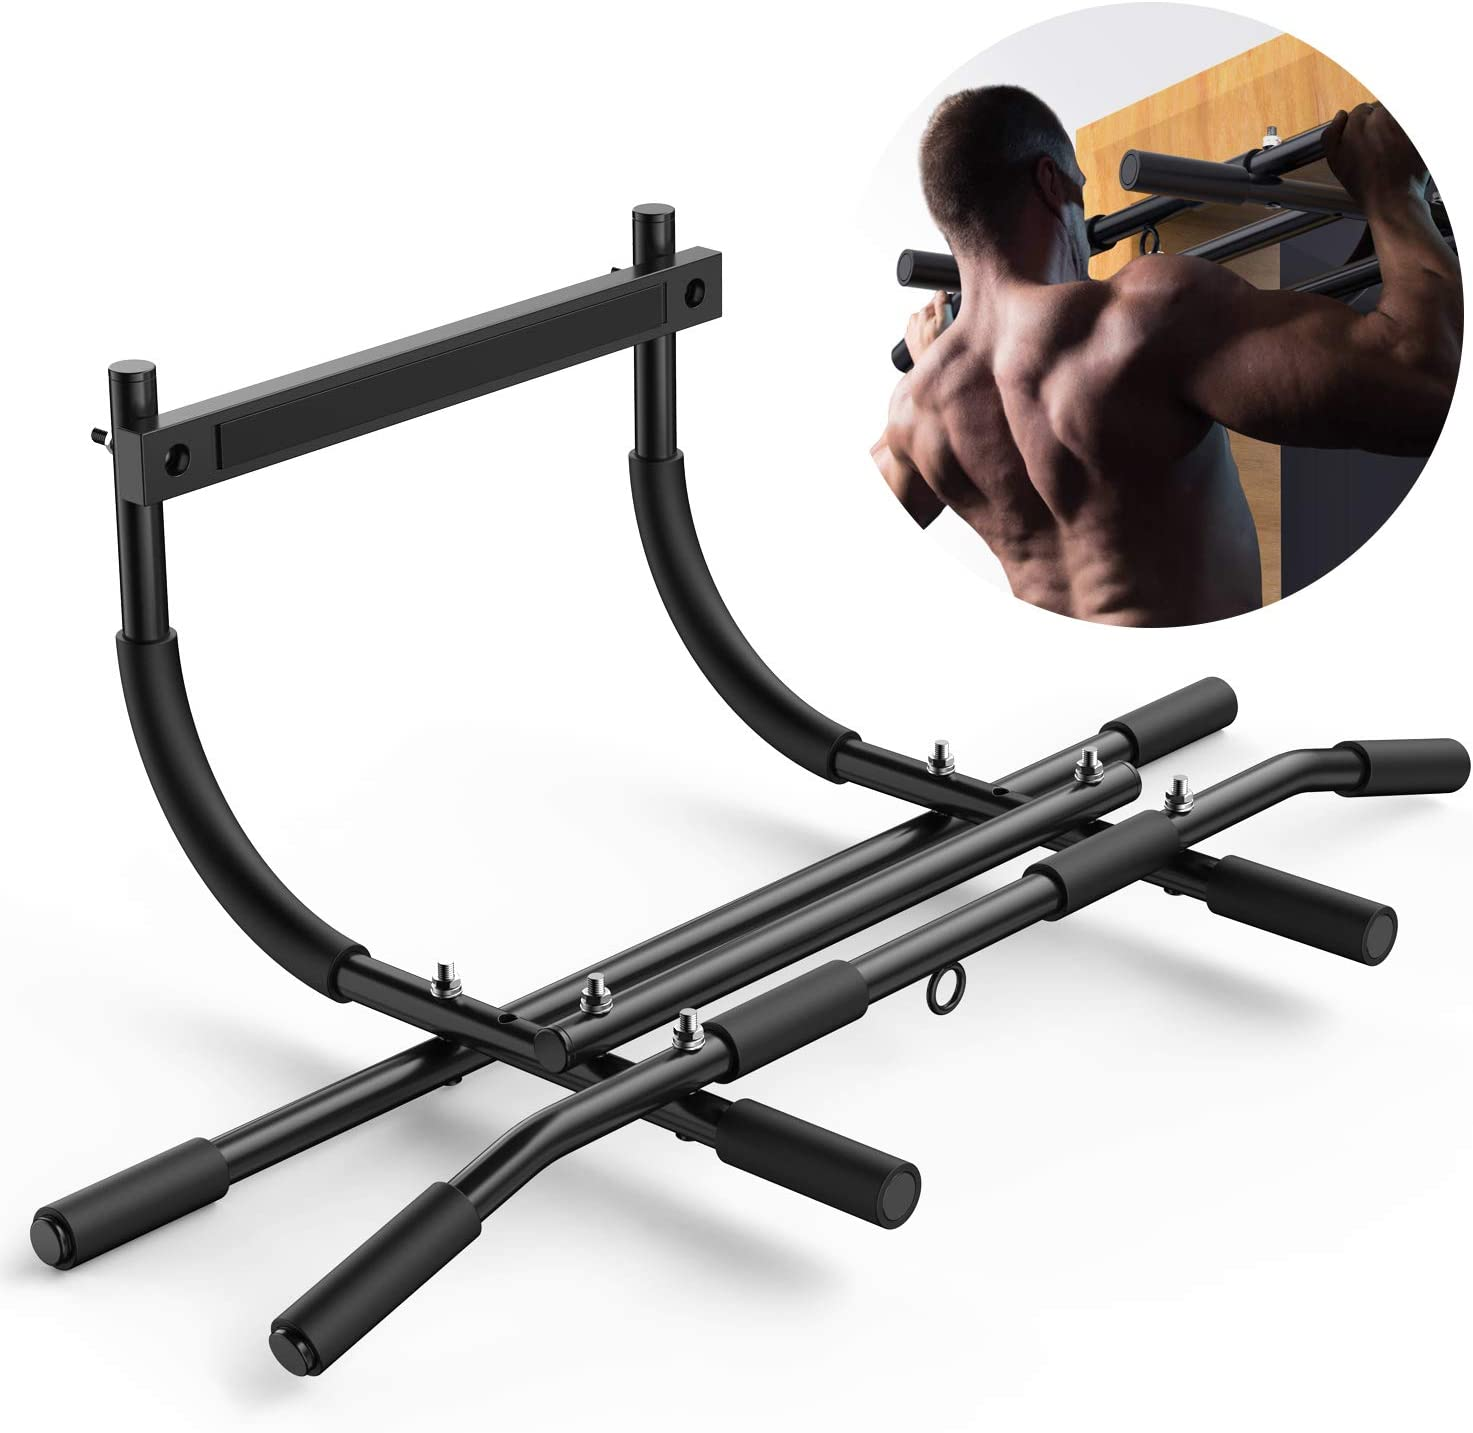 Pull Up Bar for Doorway No Screws - Heavy Duty Chin up bar with Ergonomic Grip Holds up to 440 Ibs, Adjustable Multi-Function Home Gym Fitness Equipment (Fits Almost All Doors)